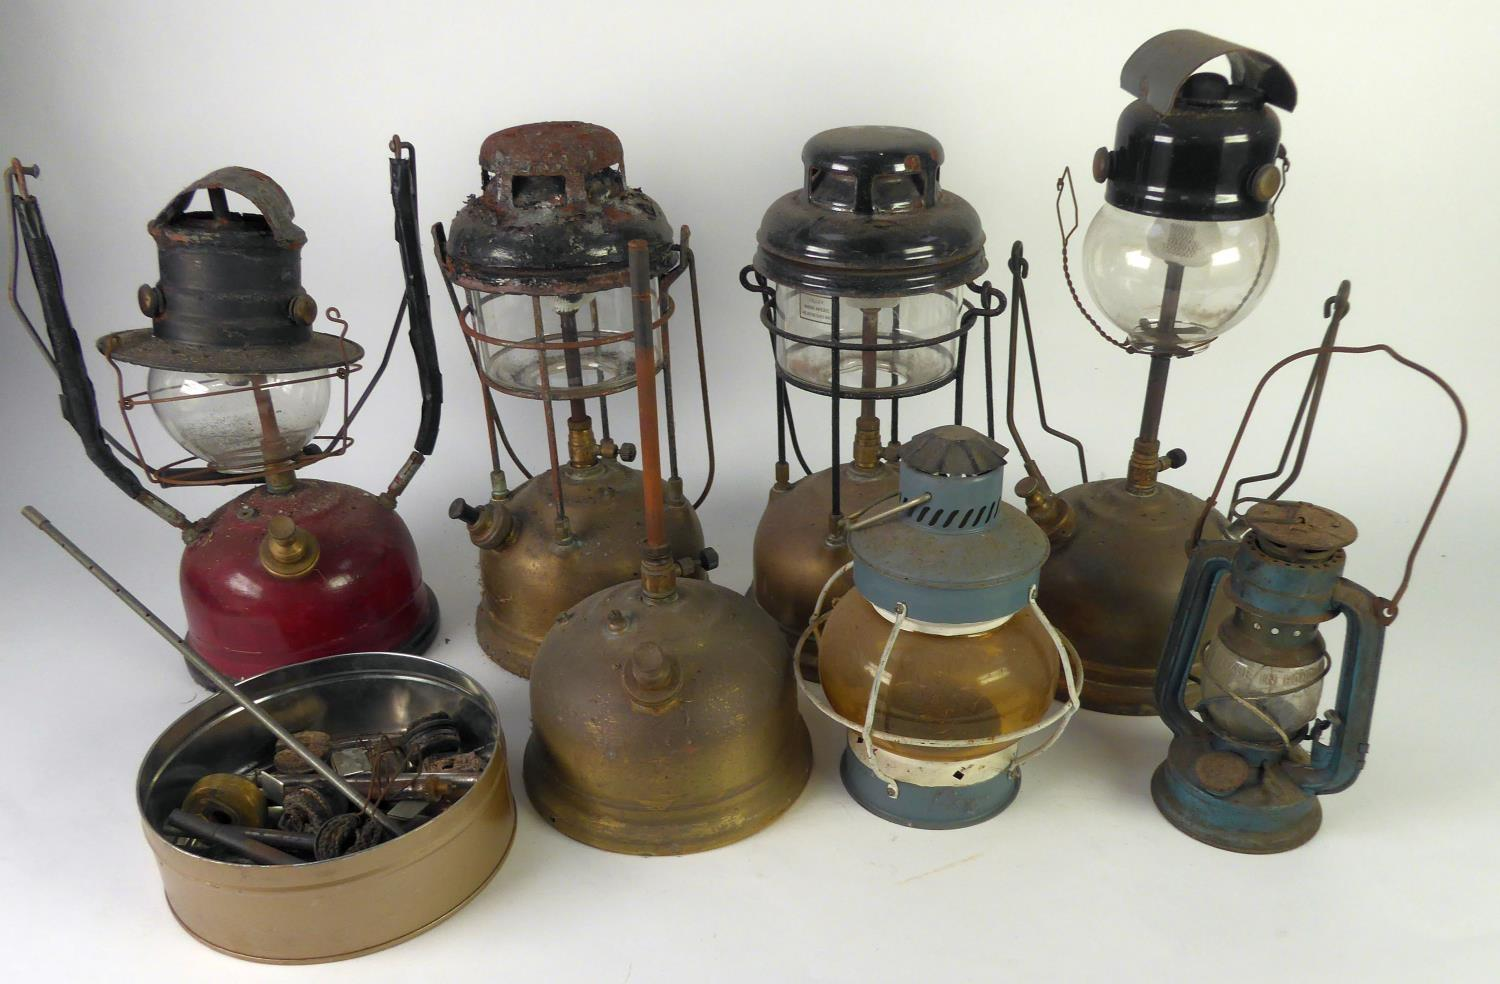 THREE TILLEY LAMPS with brass tanks, ANOTHER with red enamelled tank, two SMALL LANTERNS and part of